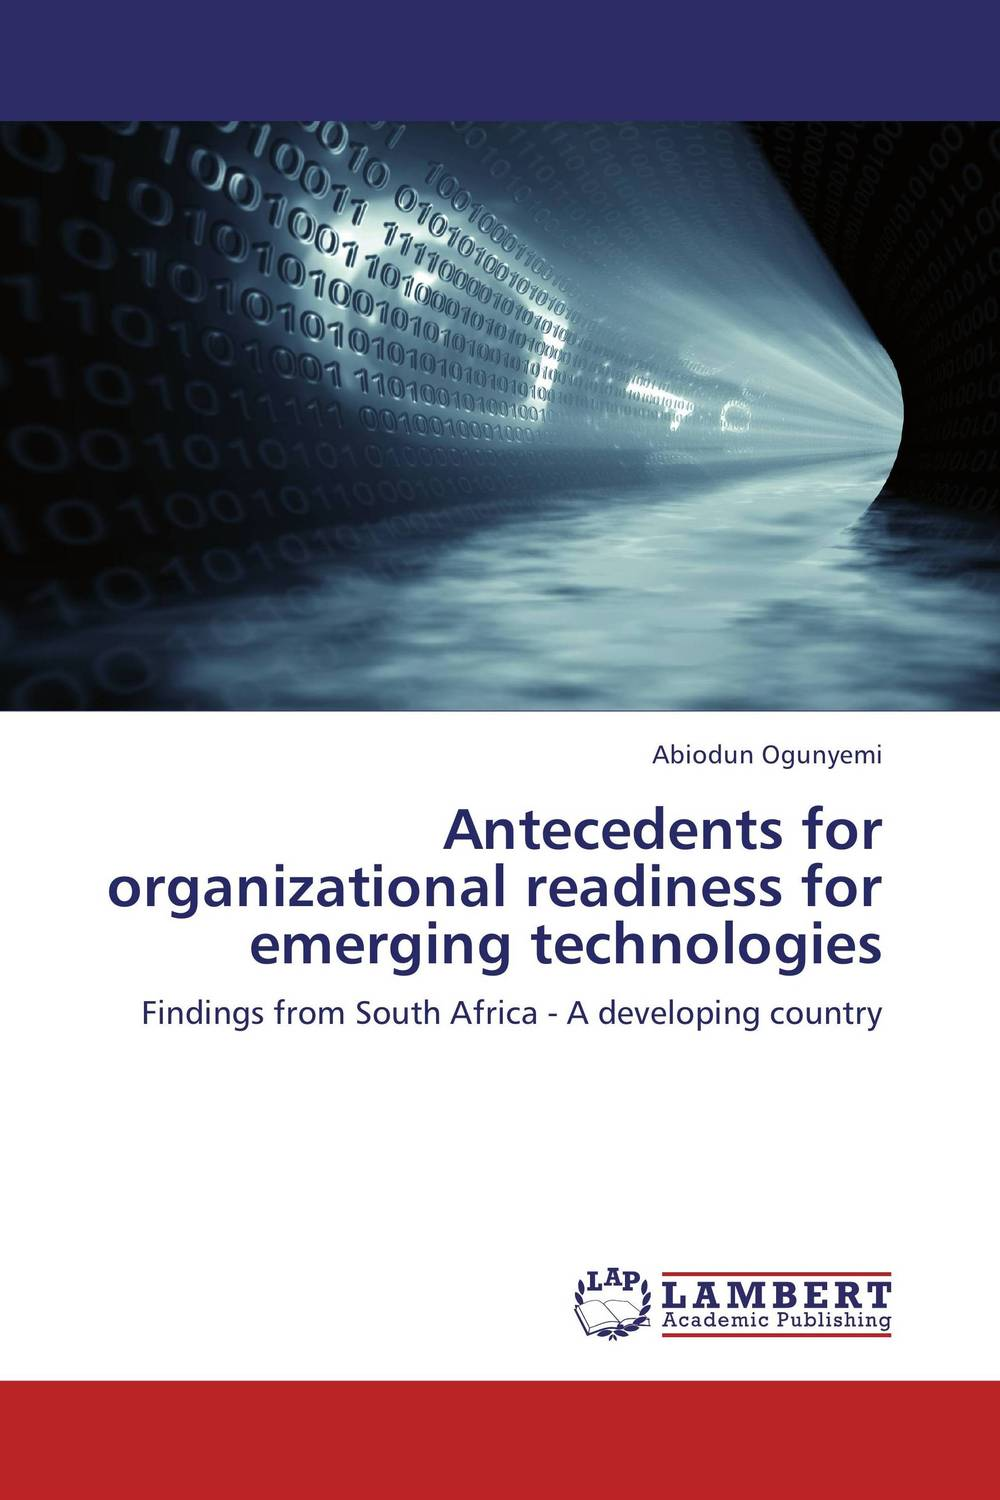 Antecedents for organizational readiness for emerging technologies modern surveying technologies used for tall constructions